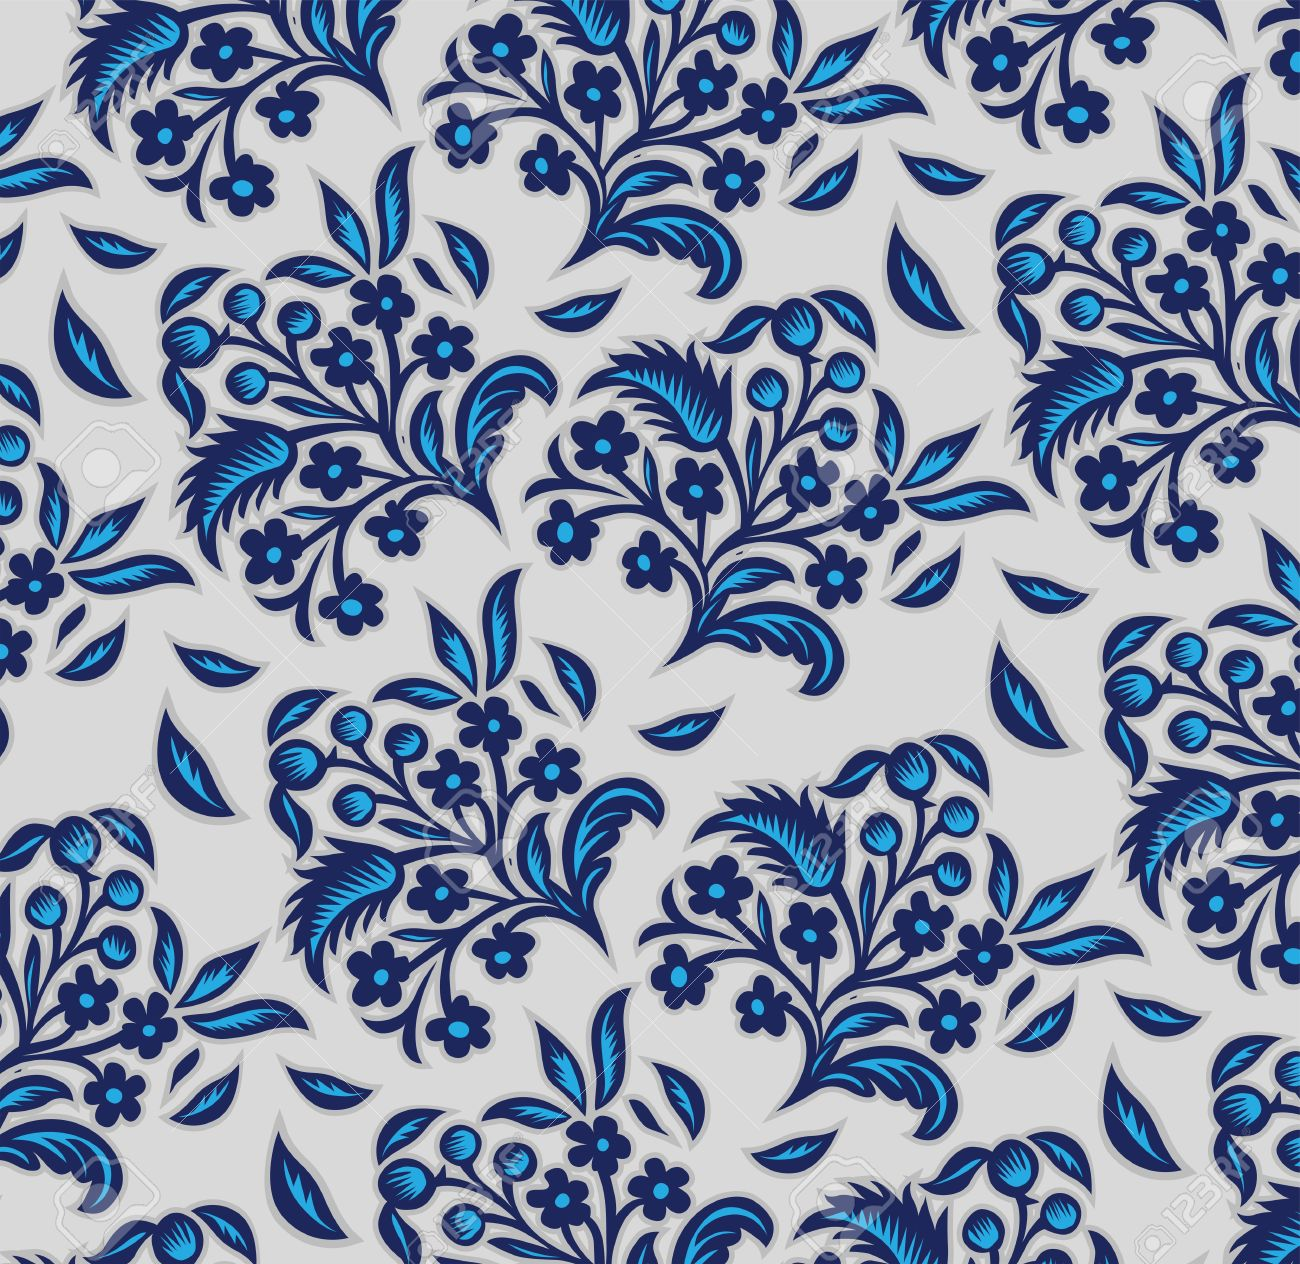 blue floral background pattern in vector - 11079236